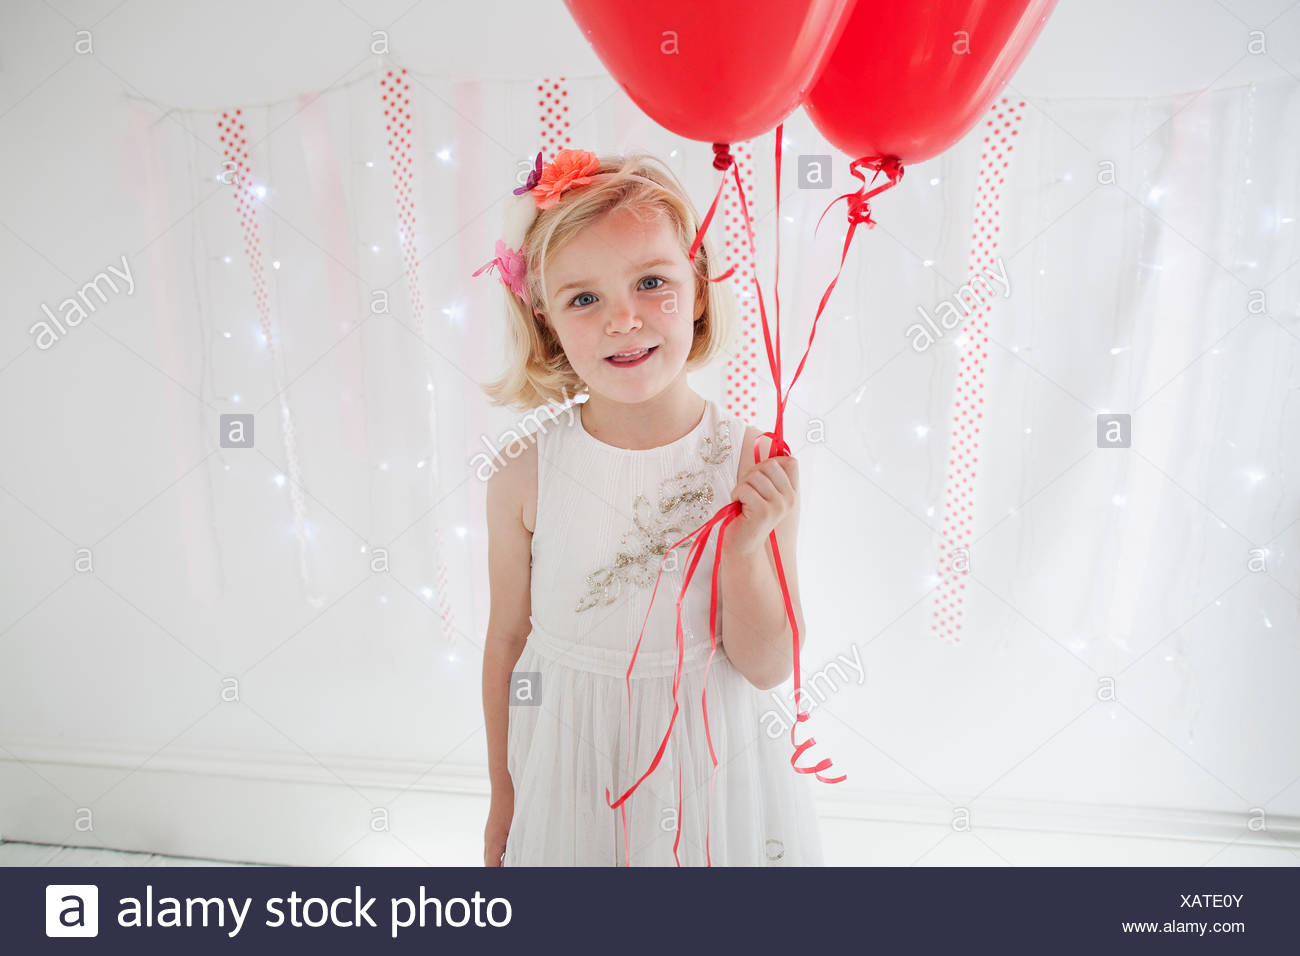 Young girl posing for a picture in a photographers studio, holding red balloons. - Stock Image